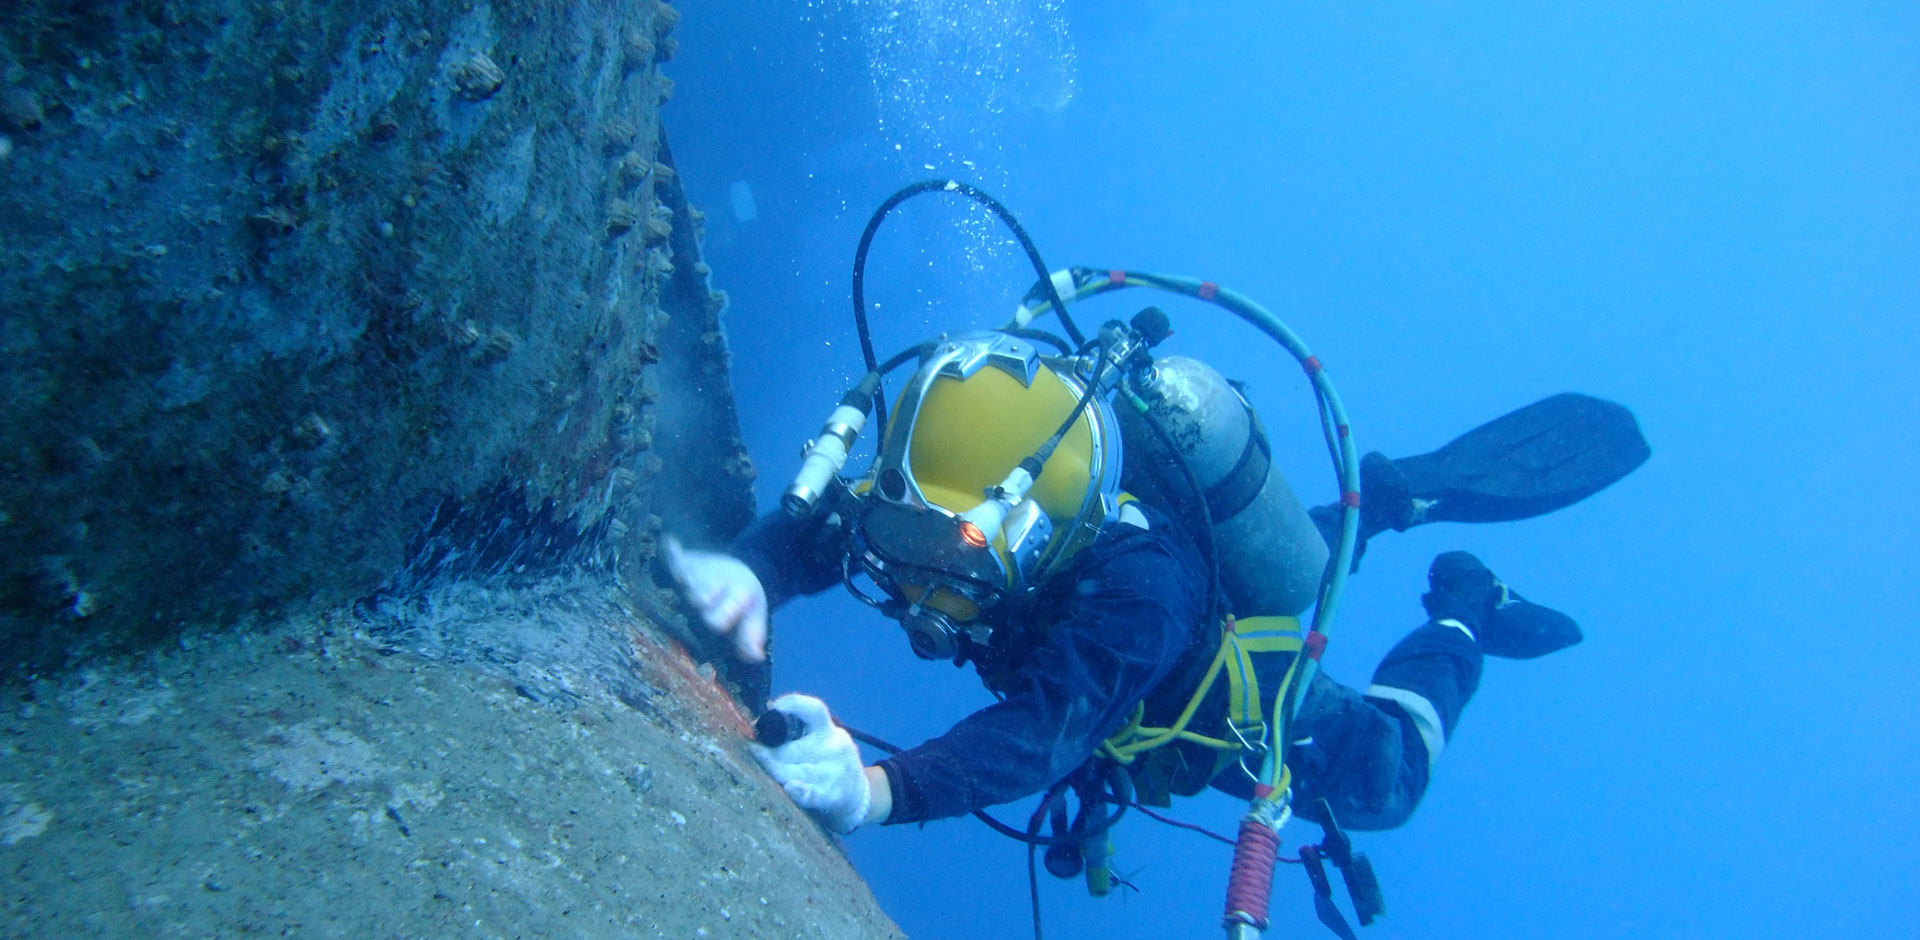 Inwater | diver | inspection | biofouling | management